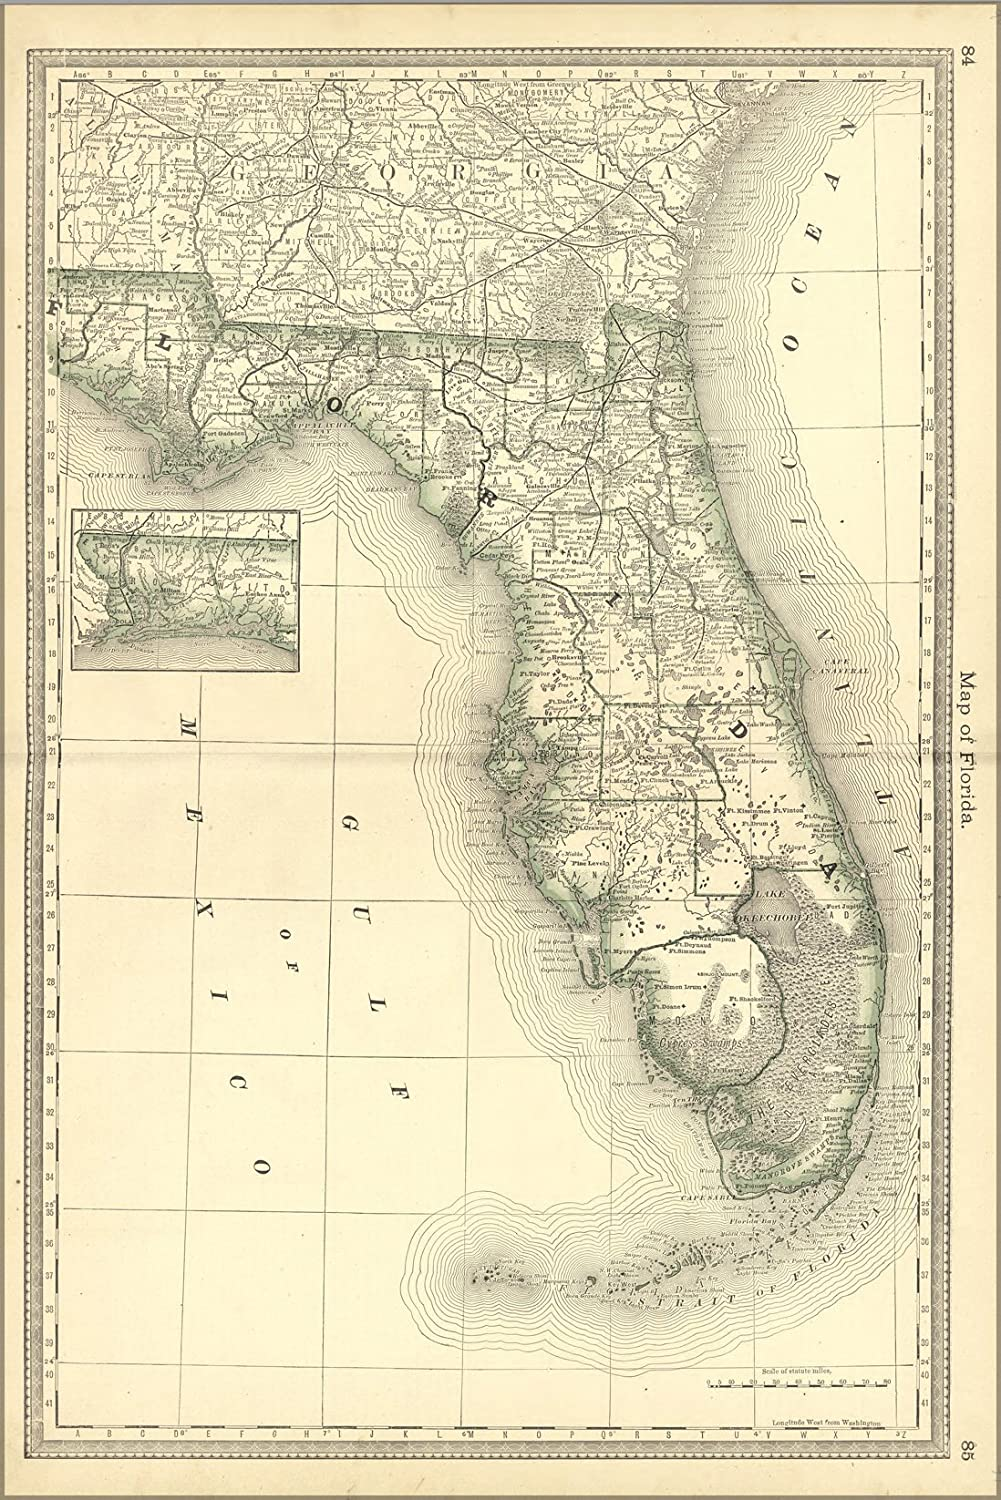 24x36 Poster; Map Of Florida 1881; Antique Reprint on old st. augustine florida map, orlando florida map, florida map with exit numbers, central fl road map, daytona beach florida map, i 95 sc map, florida expressway map, florida schools map, south florida map, florida local map, florida empire map, florida map i-95, i 75 fl map, florida turnpike map, jacksonville florida map, florida route map, florida general map, florida map mileage, florida map location of dunes, florida oregon map,